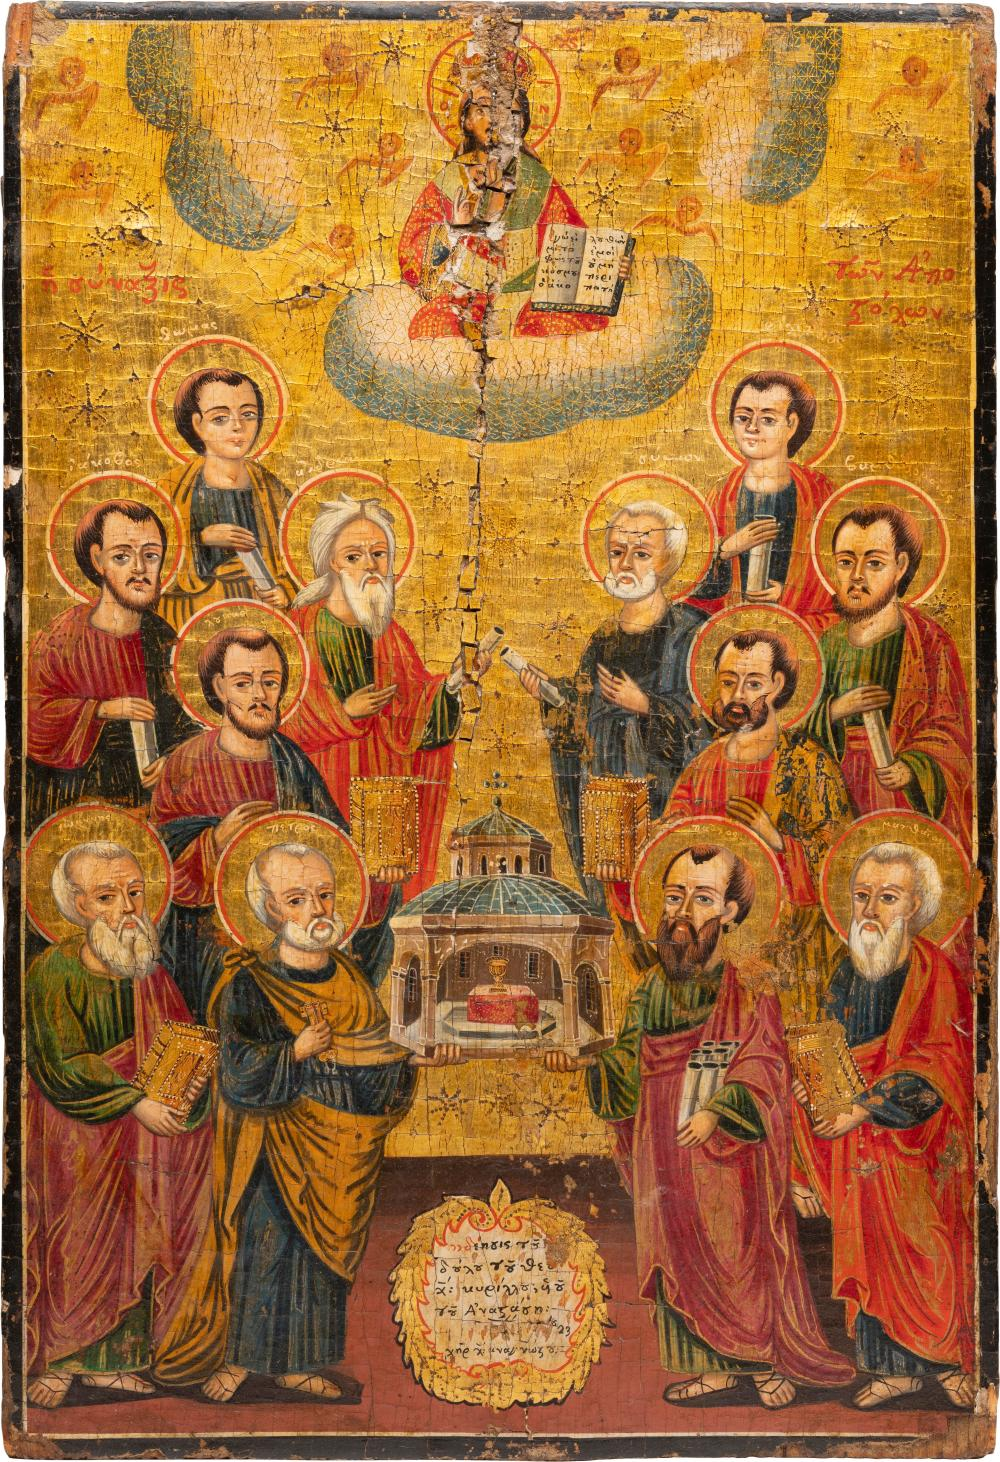 A LARGE ICON SHOWING THE TWELVE APOSTLES